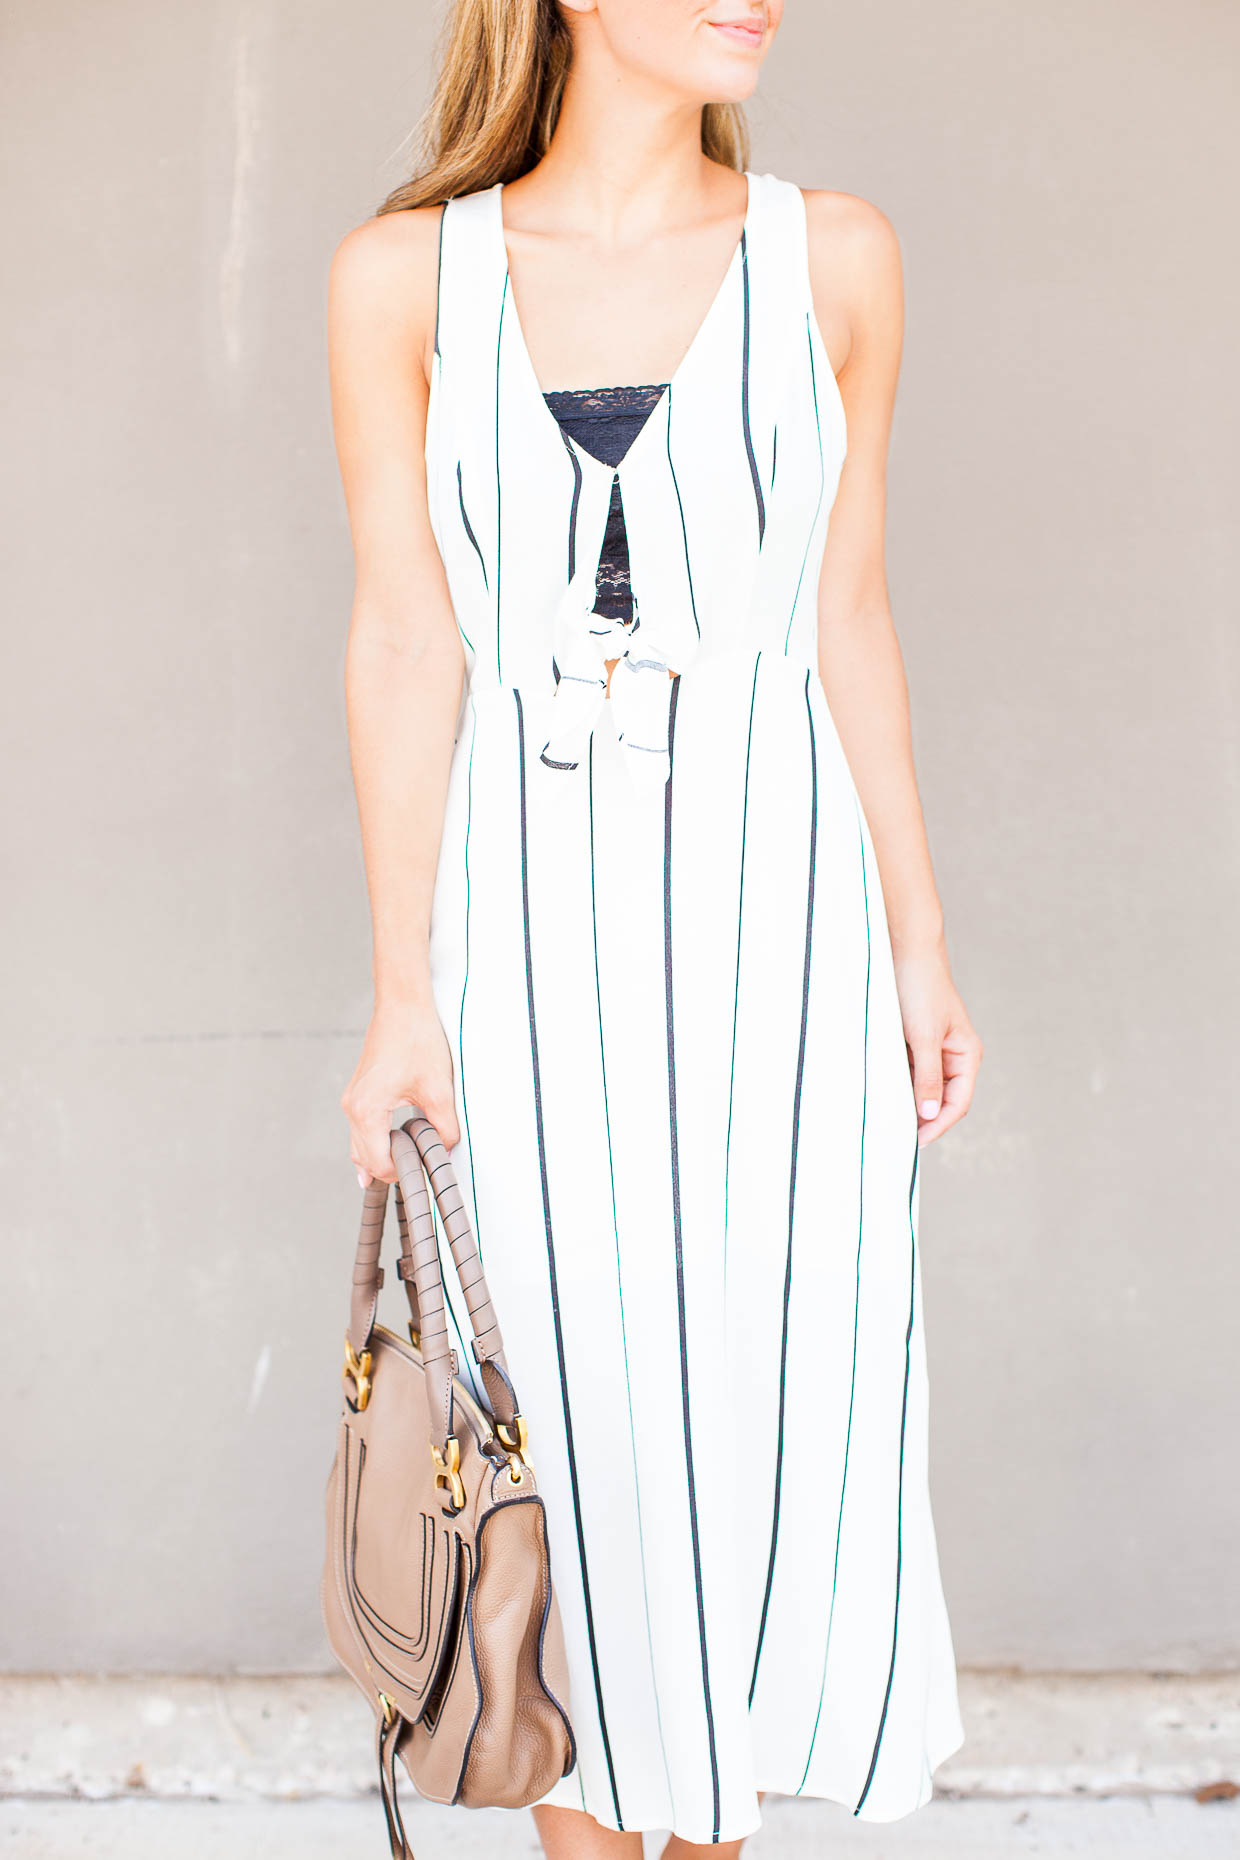 The Darling Detail is wearing an ASTR Tie Front Midi Dress, a Free People Scalloped Lace Bandeau, and is holding the Chloe 'Medium Marcie' Leather Satchel.